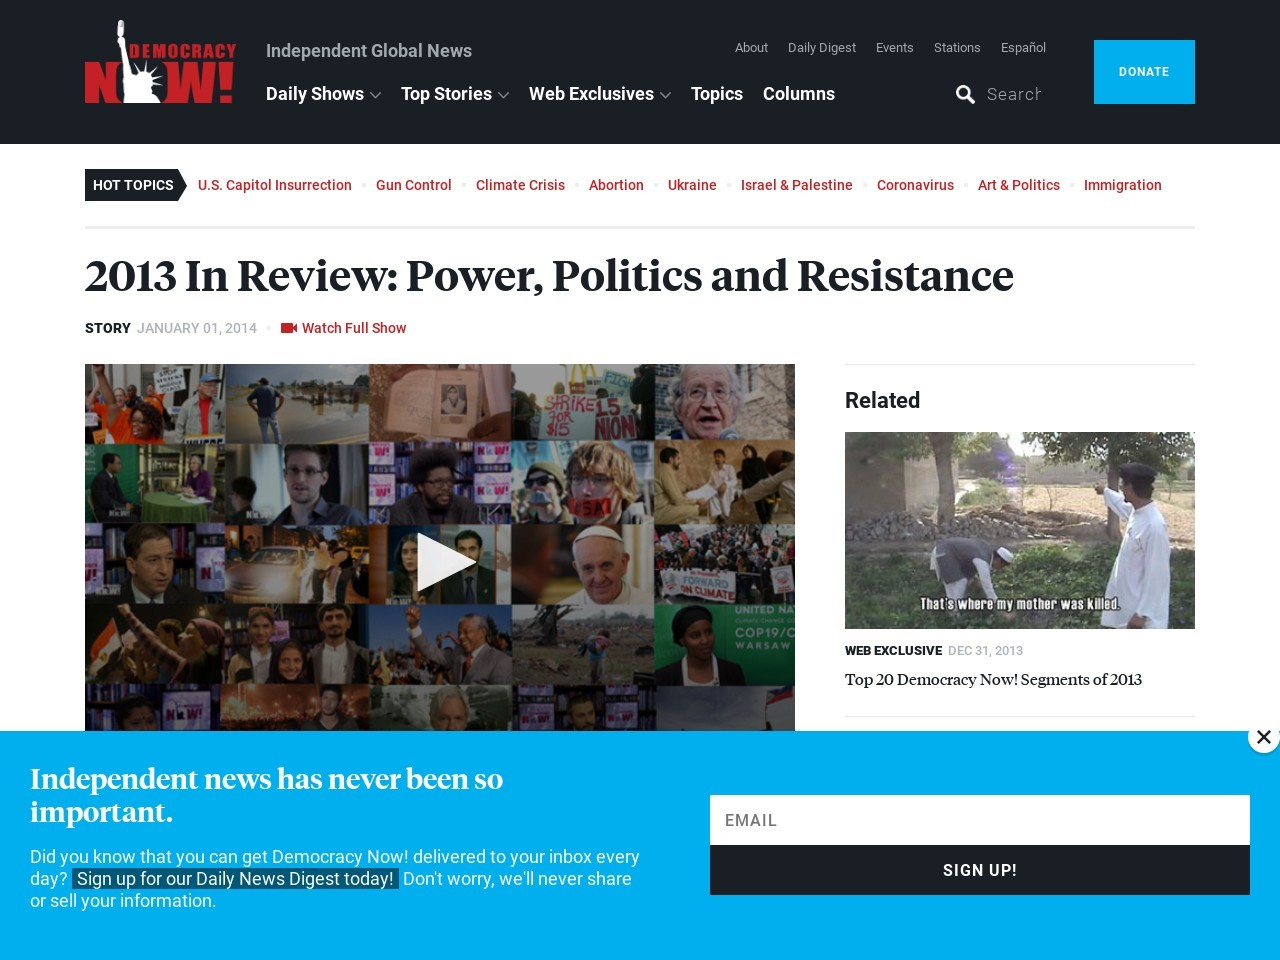 2013 In Review: Power, Politics and Resistance | Democracy Now!